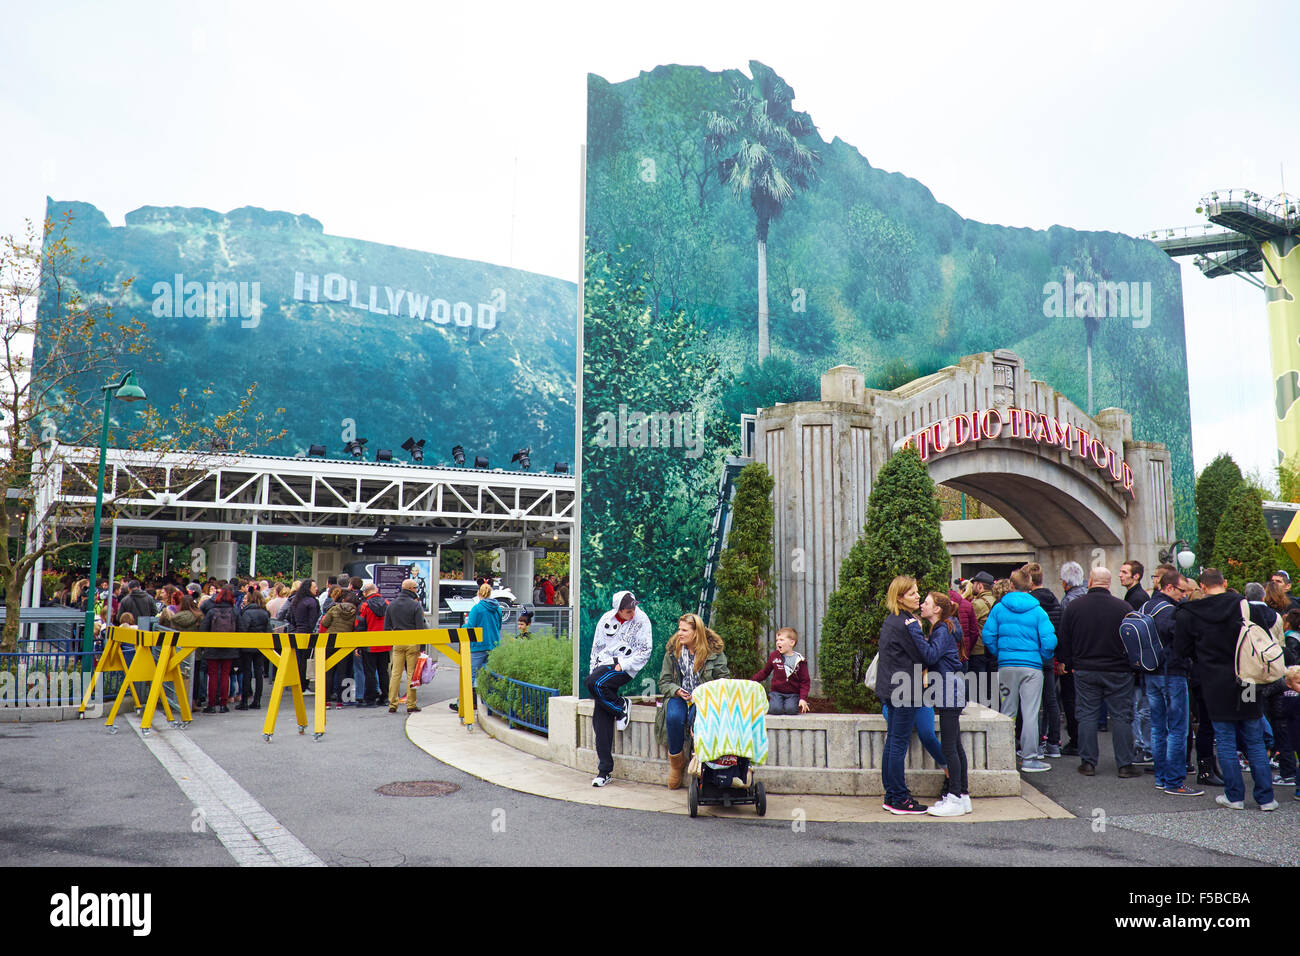 queuing for the studio tram tour walt disney studios disneyland paris stock photo 89376318 alamy. Black Bedroom Furniture Sets. Home Design Ideas